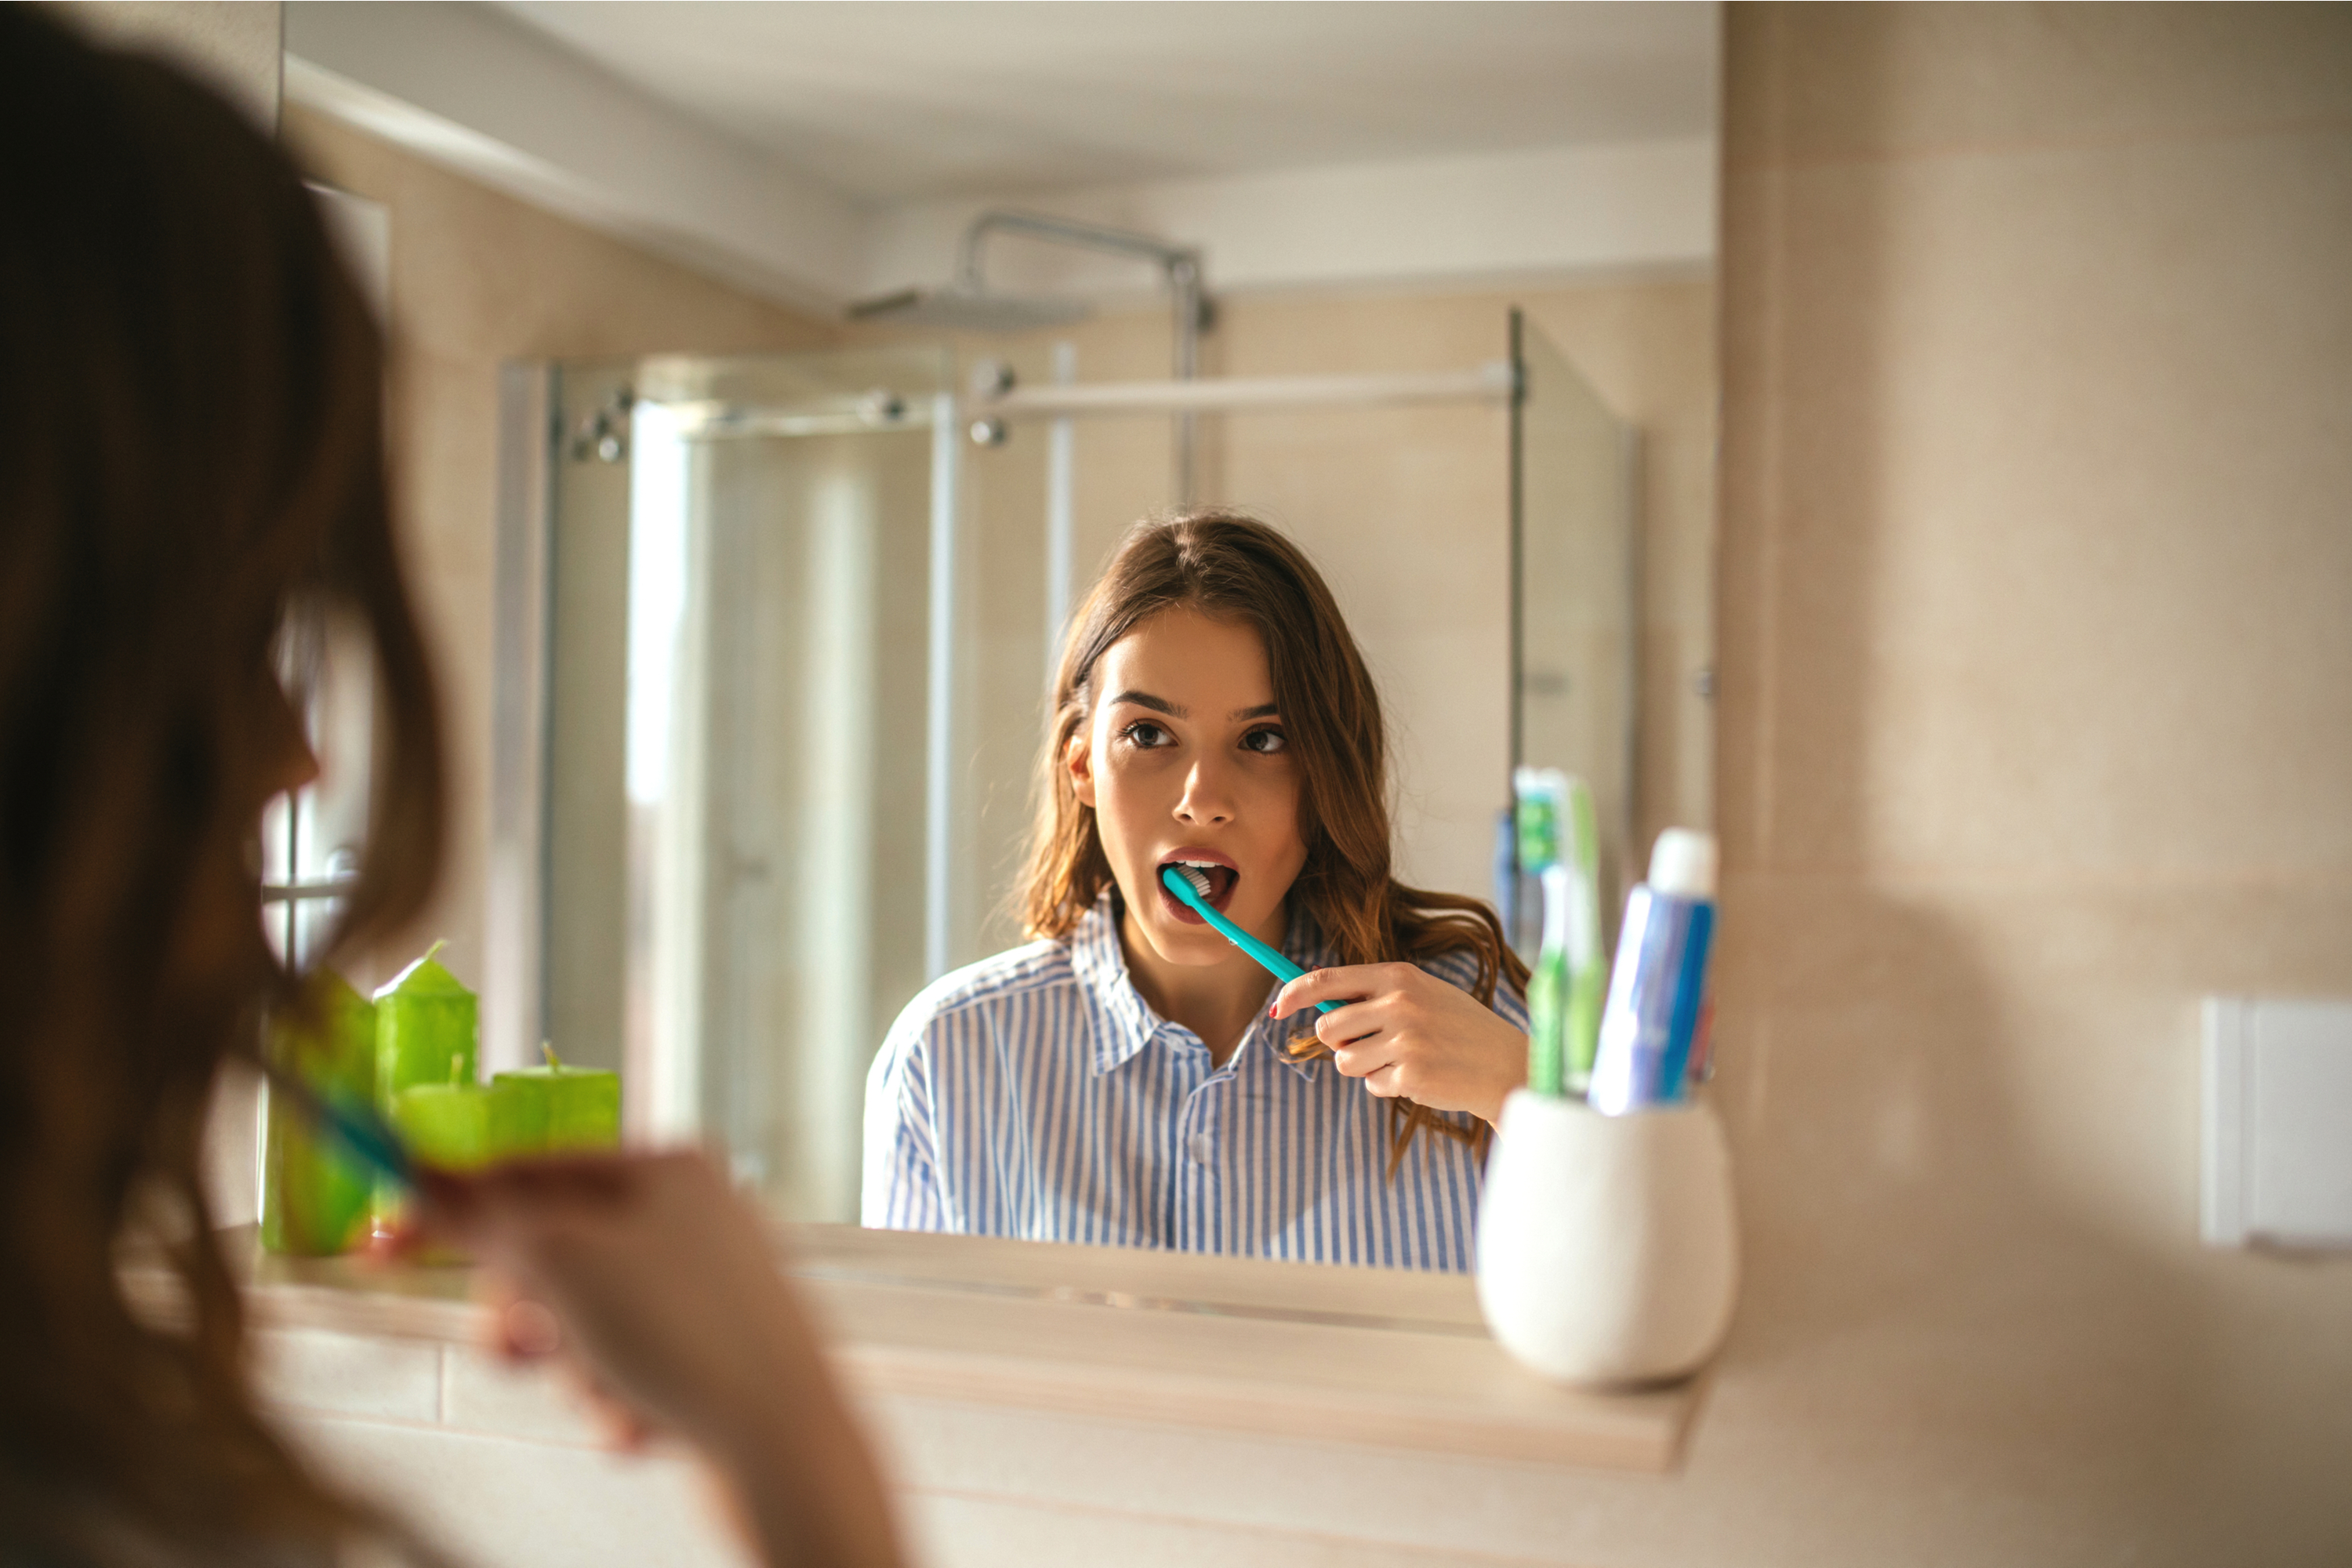 Your dental hygiene is so important! It can lead to things much worse than just cavities! Here is how to brush your teeth correctly. You'll be glad to know how!